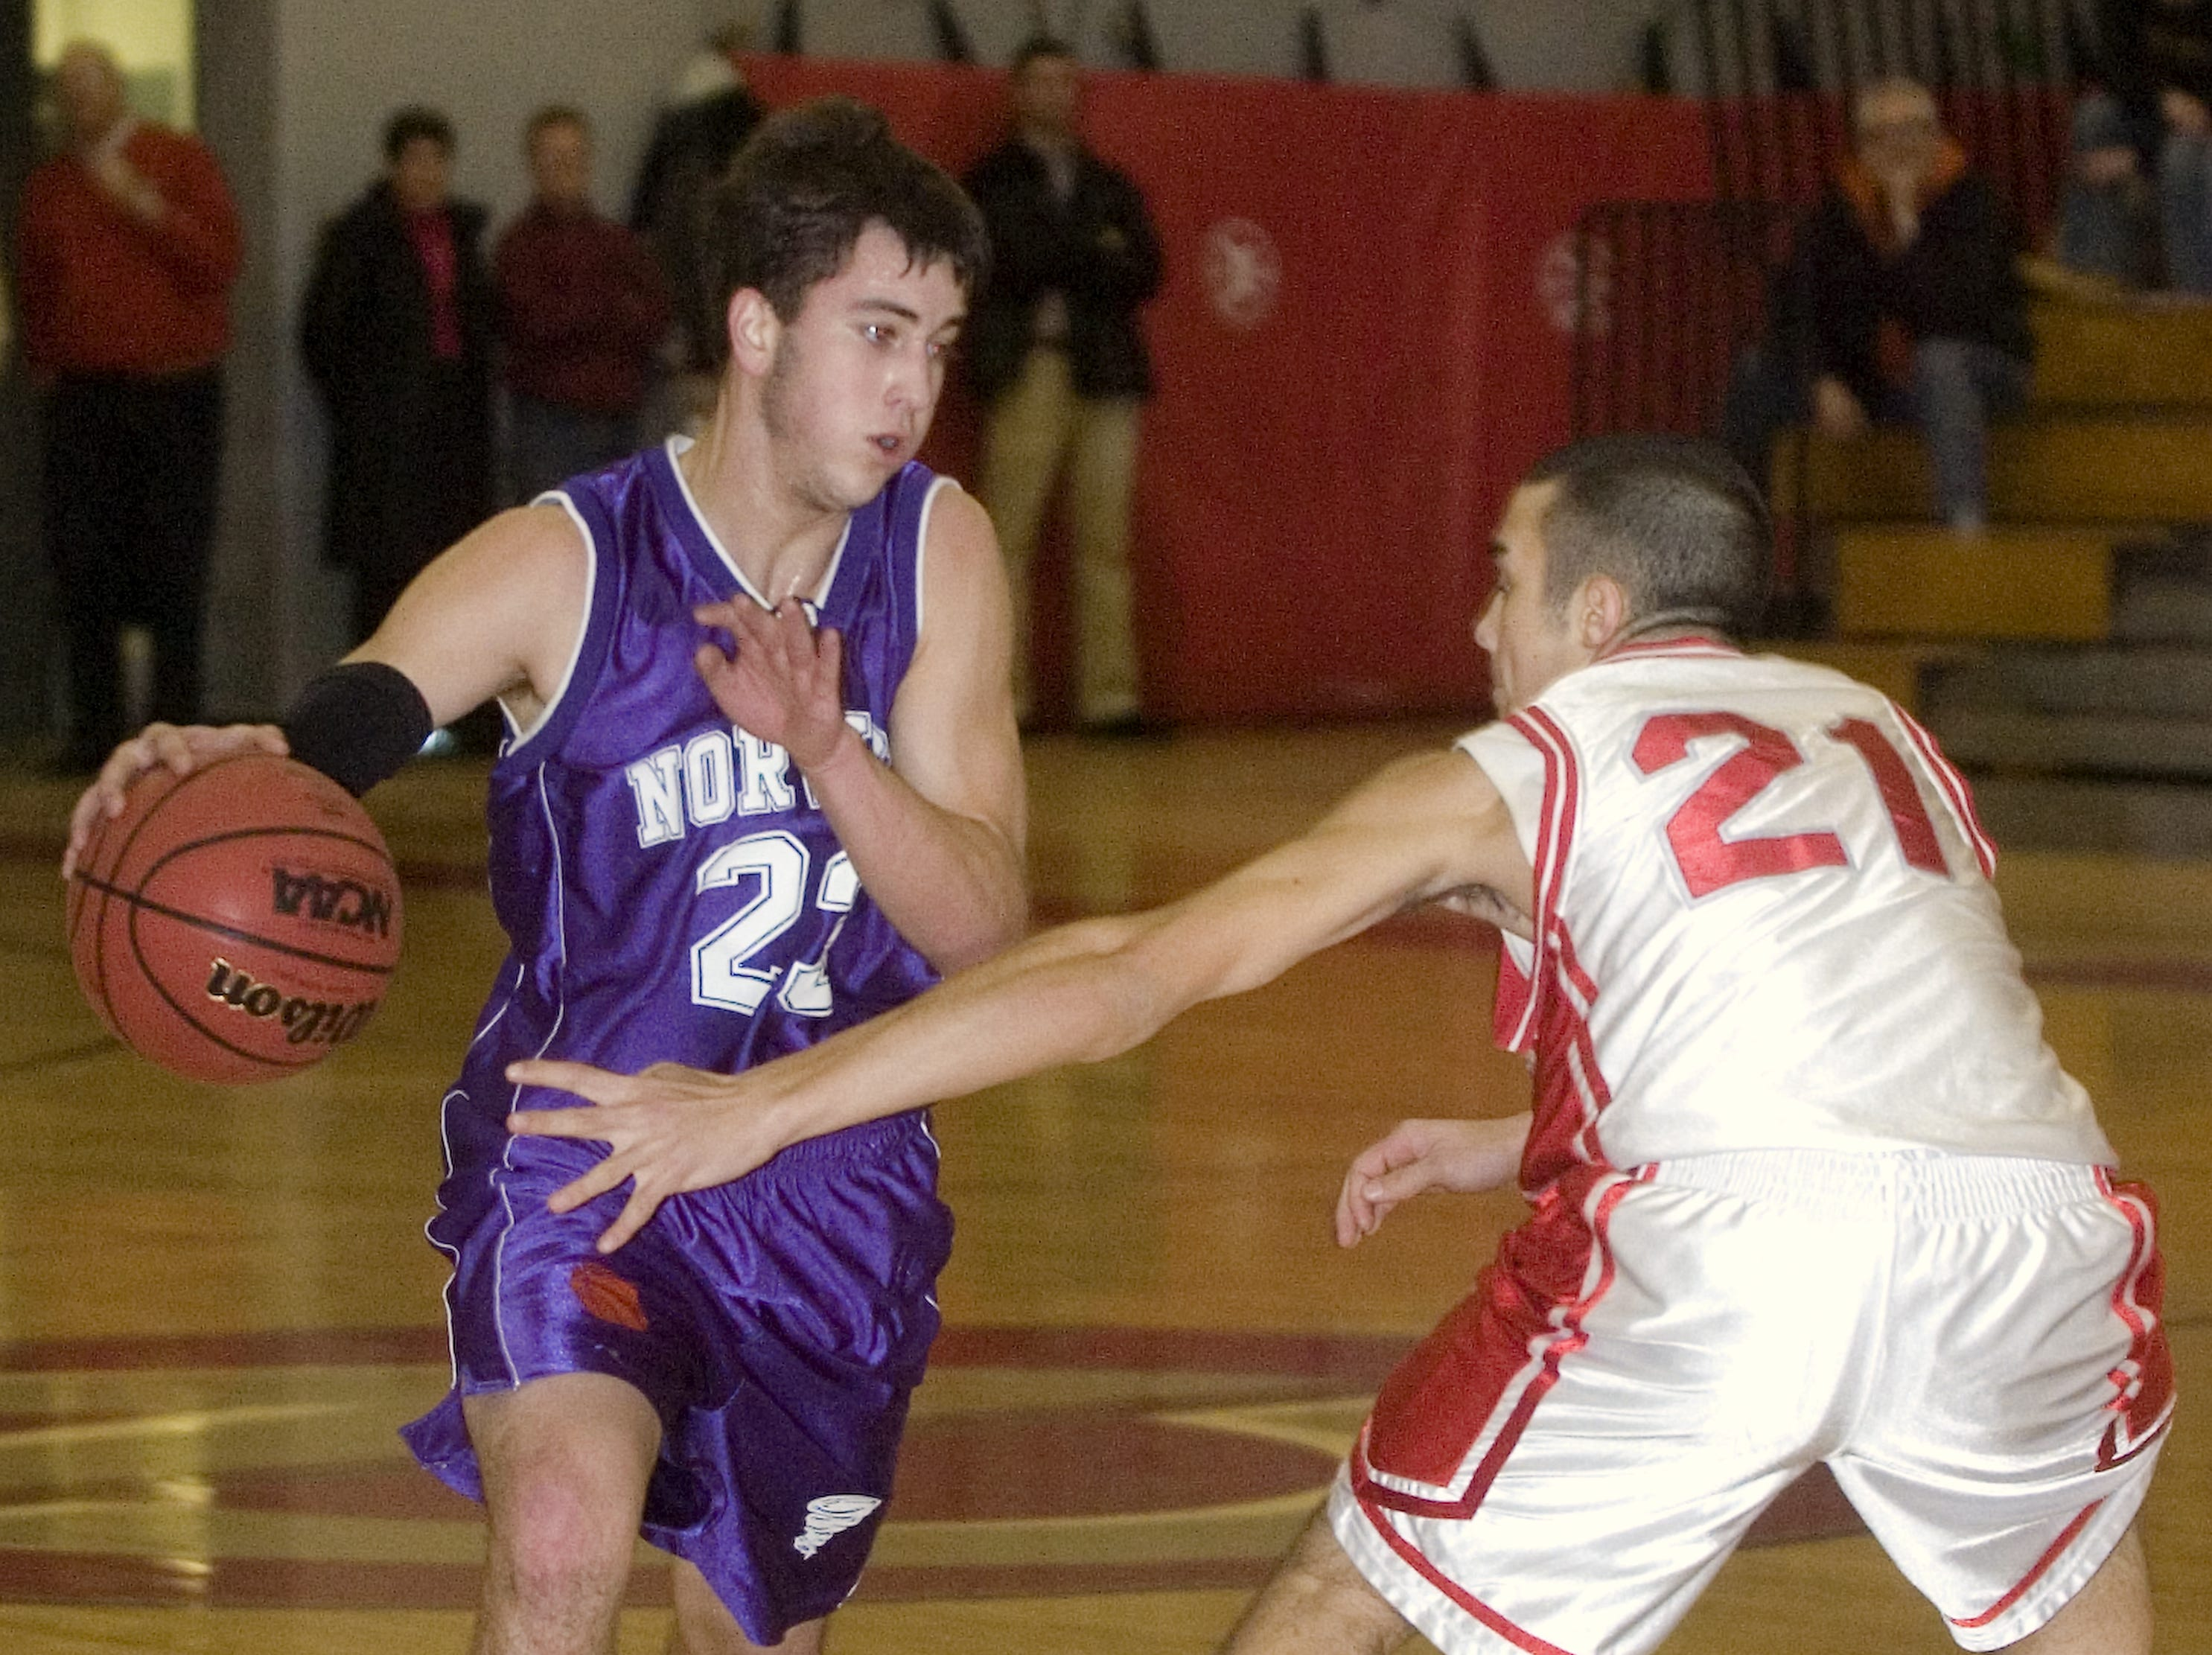 2010: Norwich's Derek Hughes, left, tries to get by Chenango Valley's Robert Heller in the second quarter of Friday's game at CV.